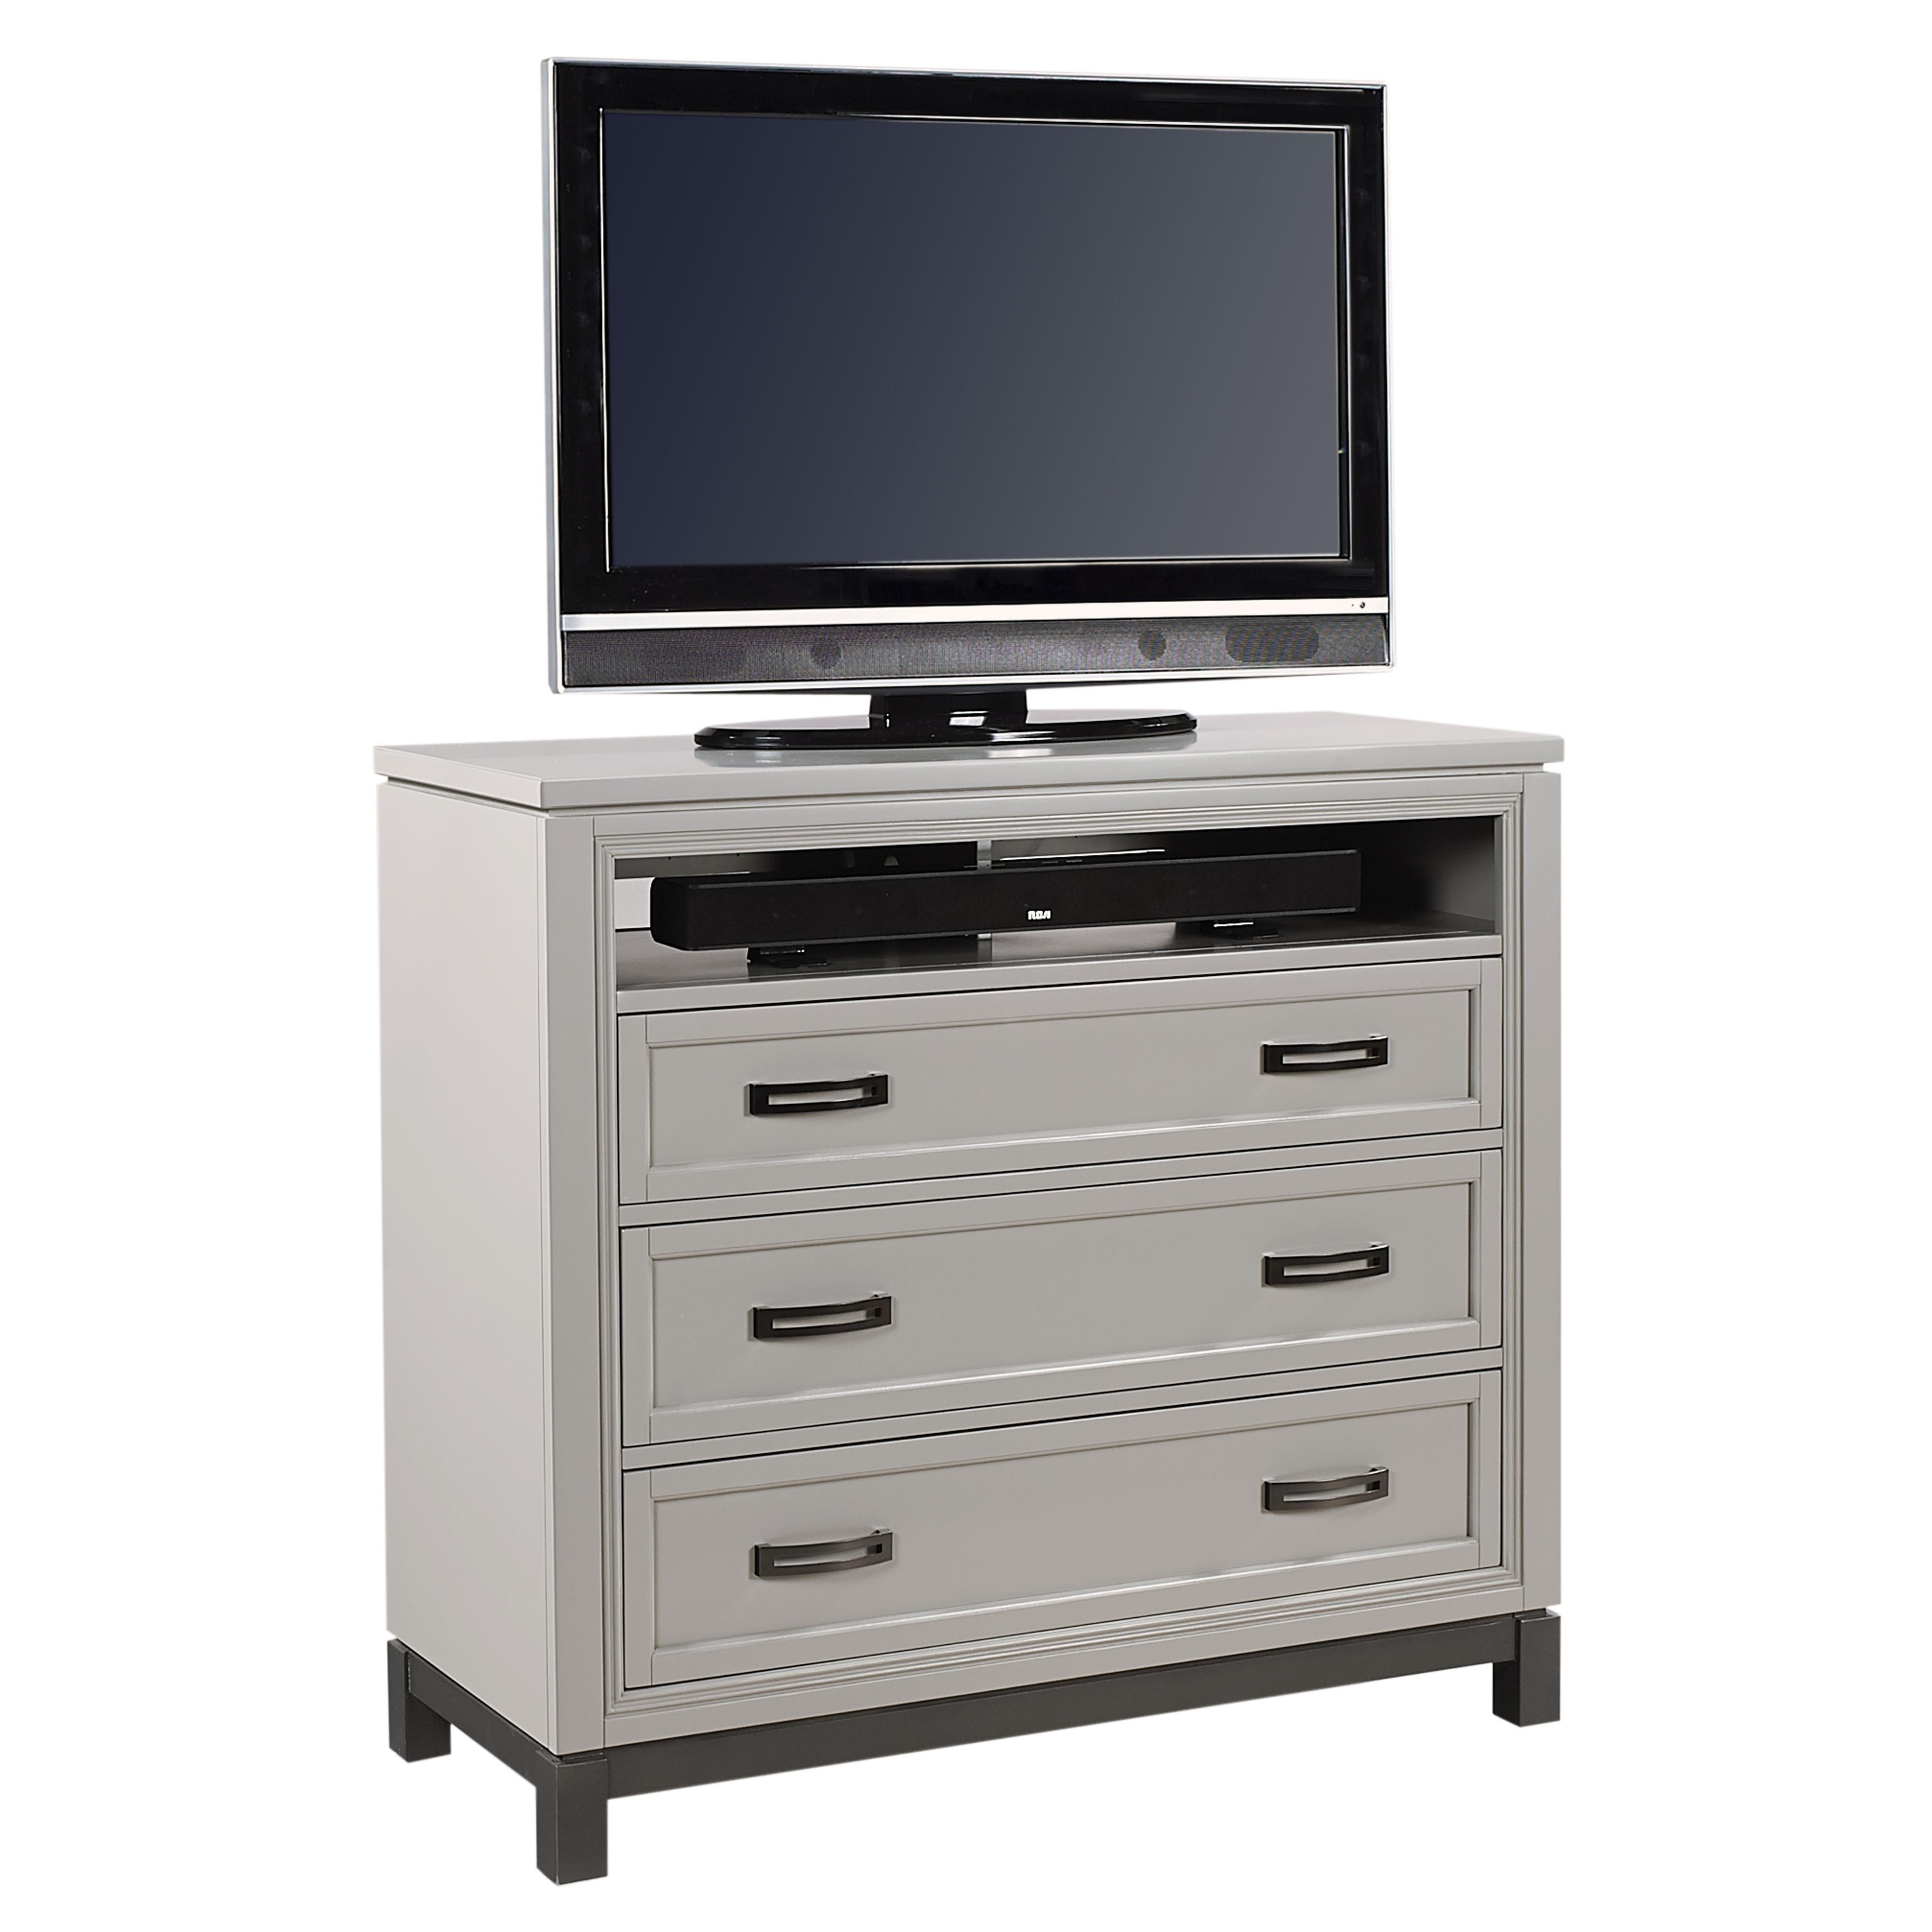 Hyde Park Entertainment Chest  by Aspenhome at Gill Brothers Furniture